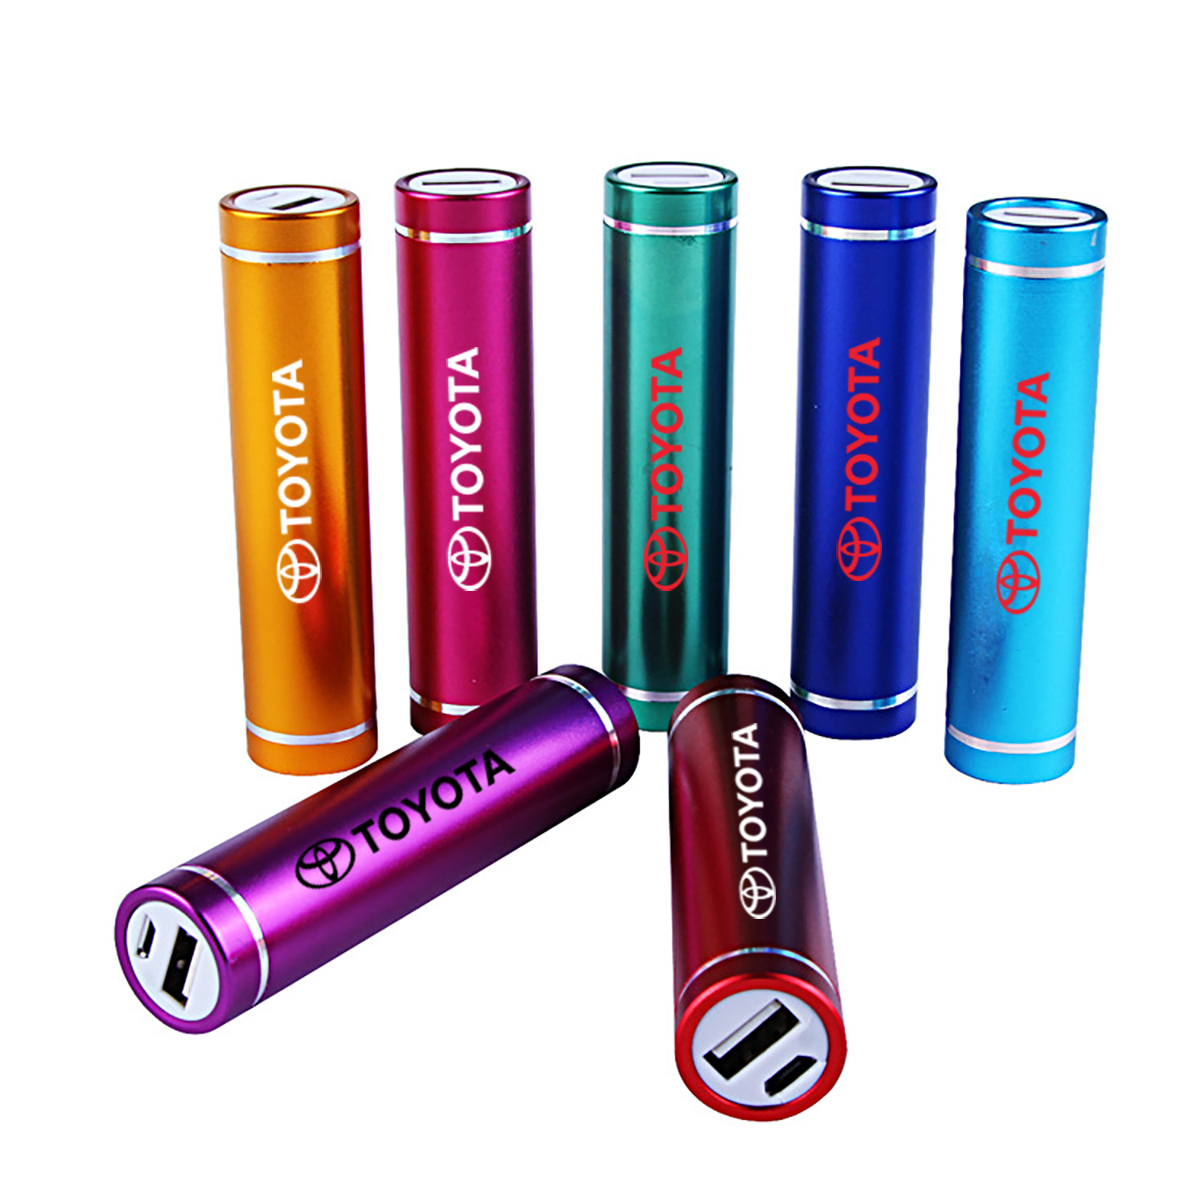 2600 MAH CYLINDRICAL PORTABLE MOBILE CHARGER